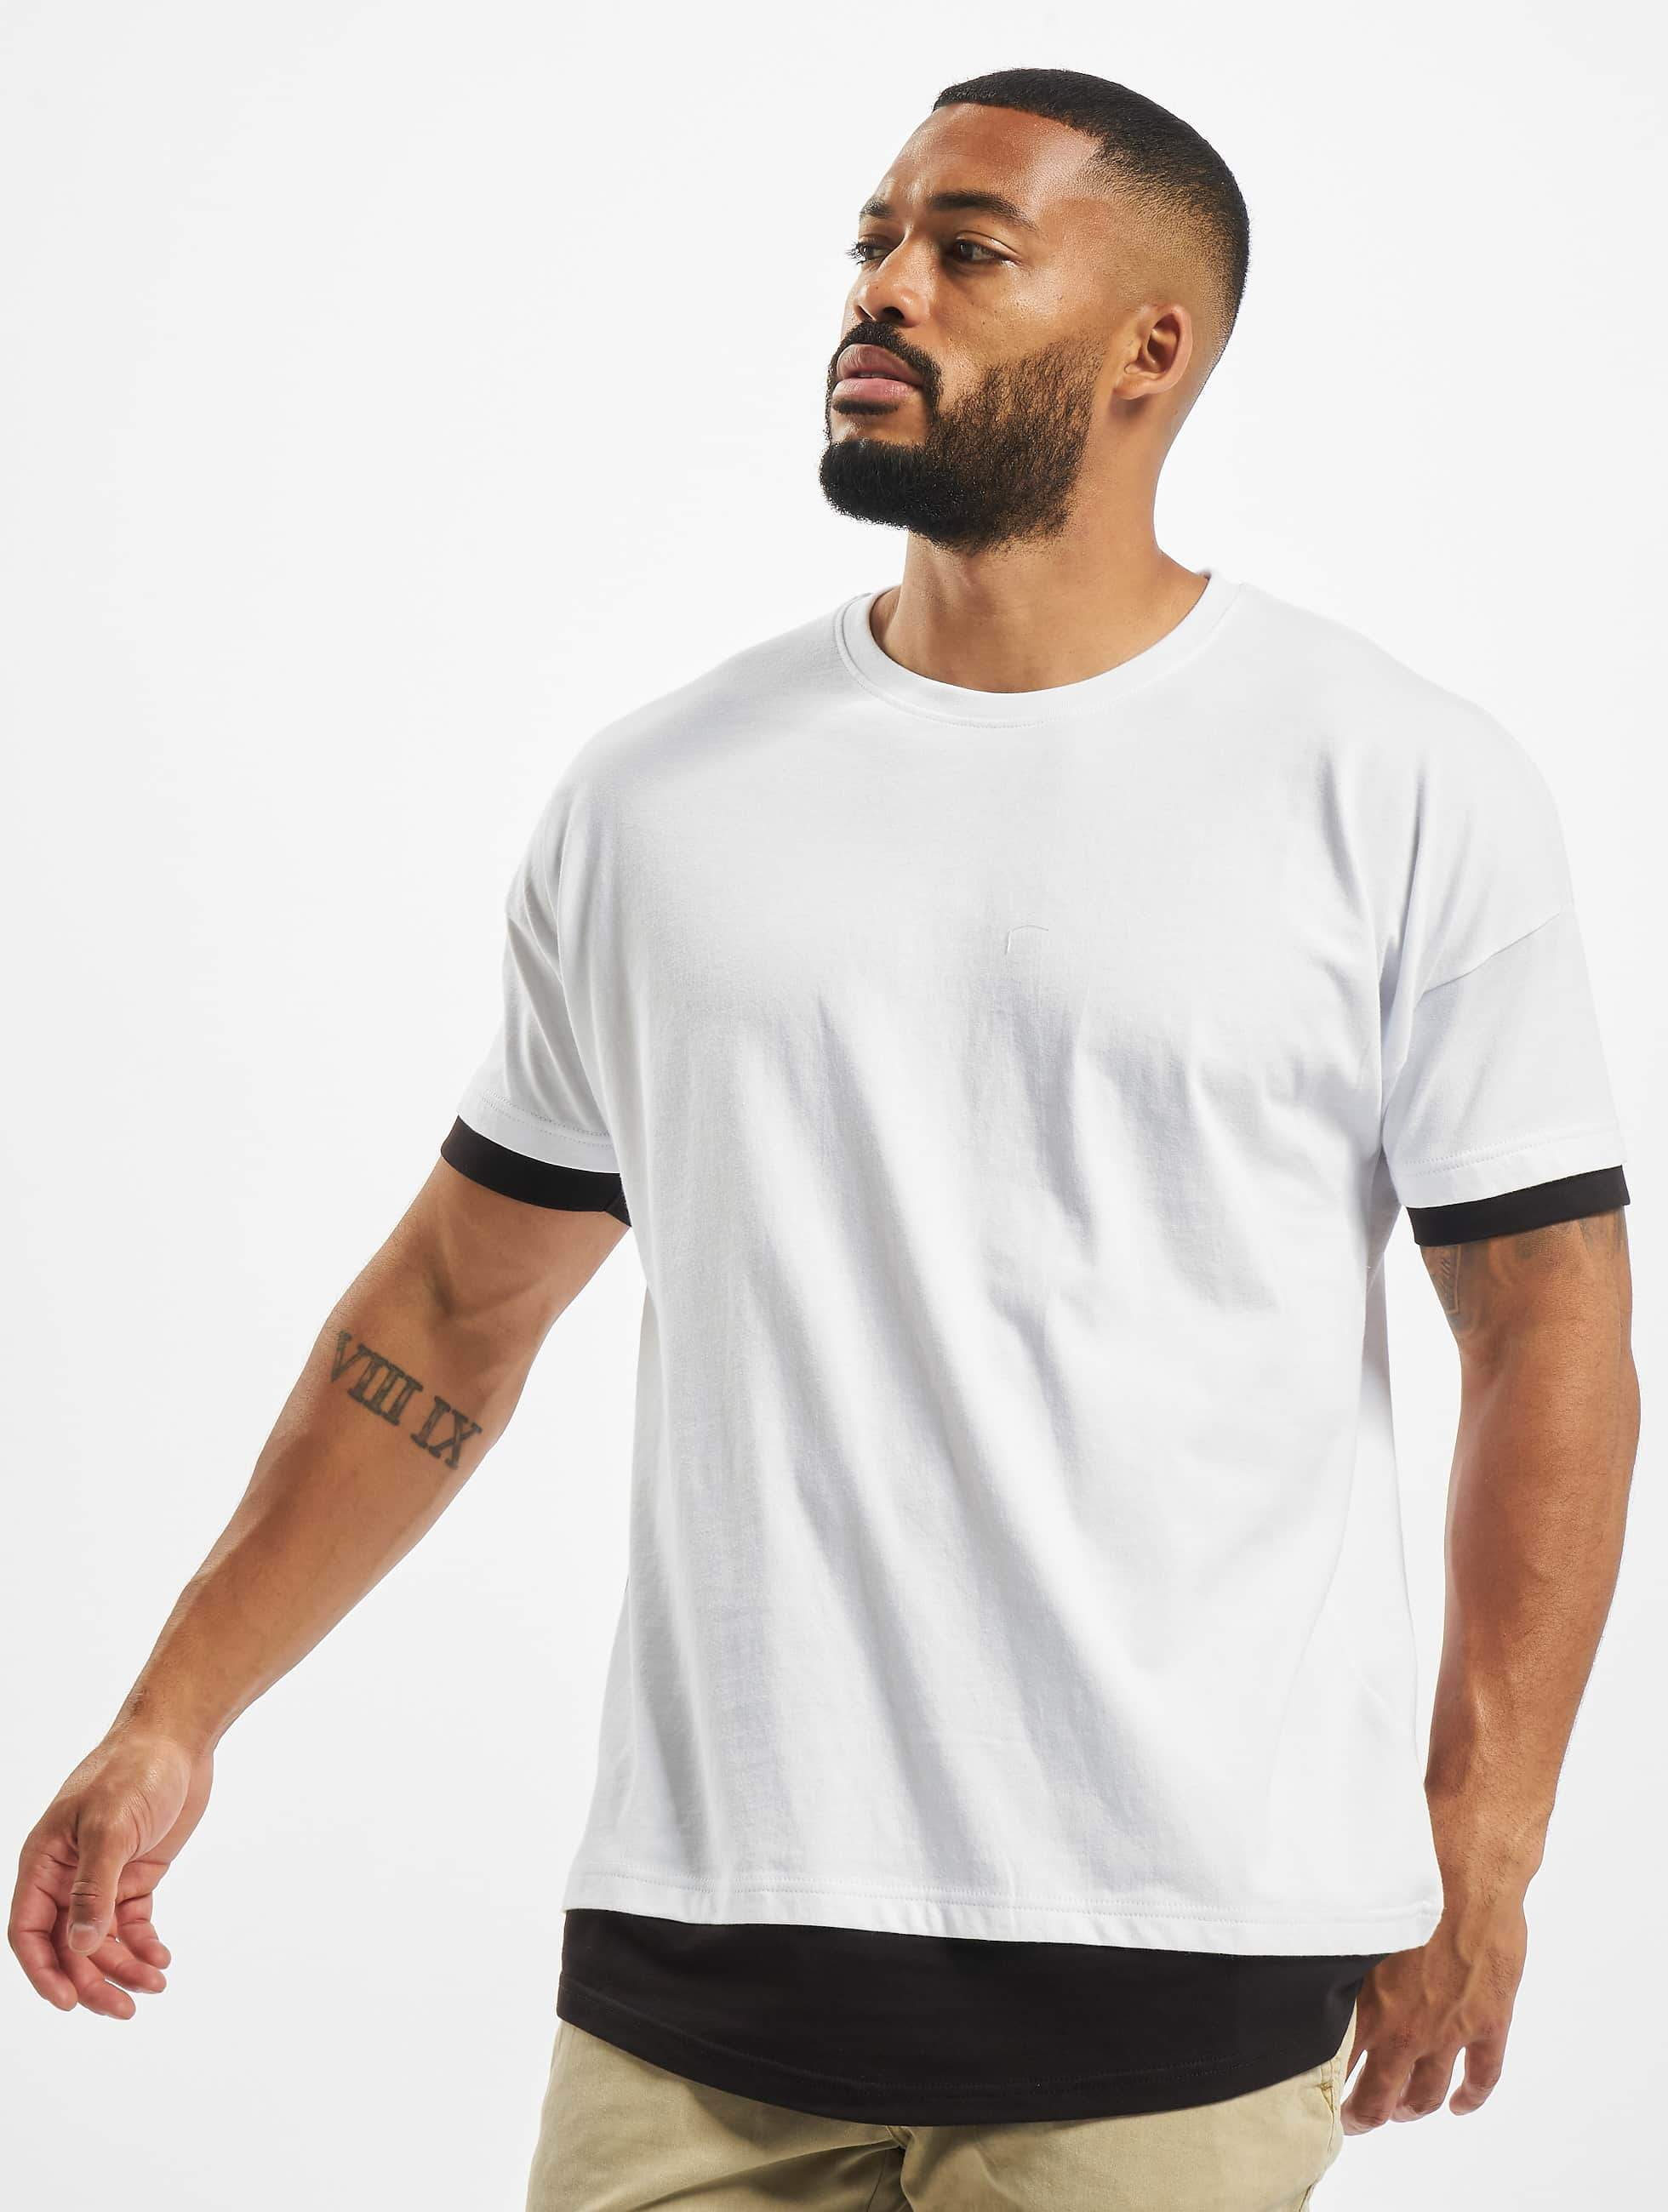 DEF / T-Shirt Tyle in white M